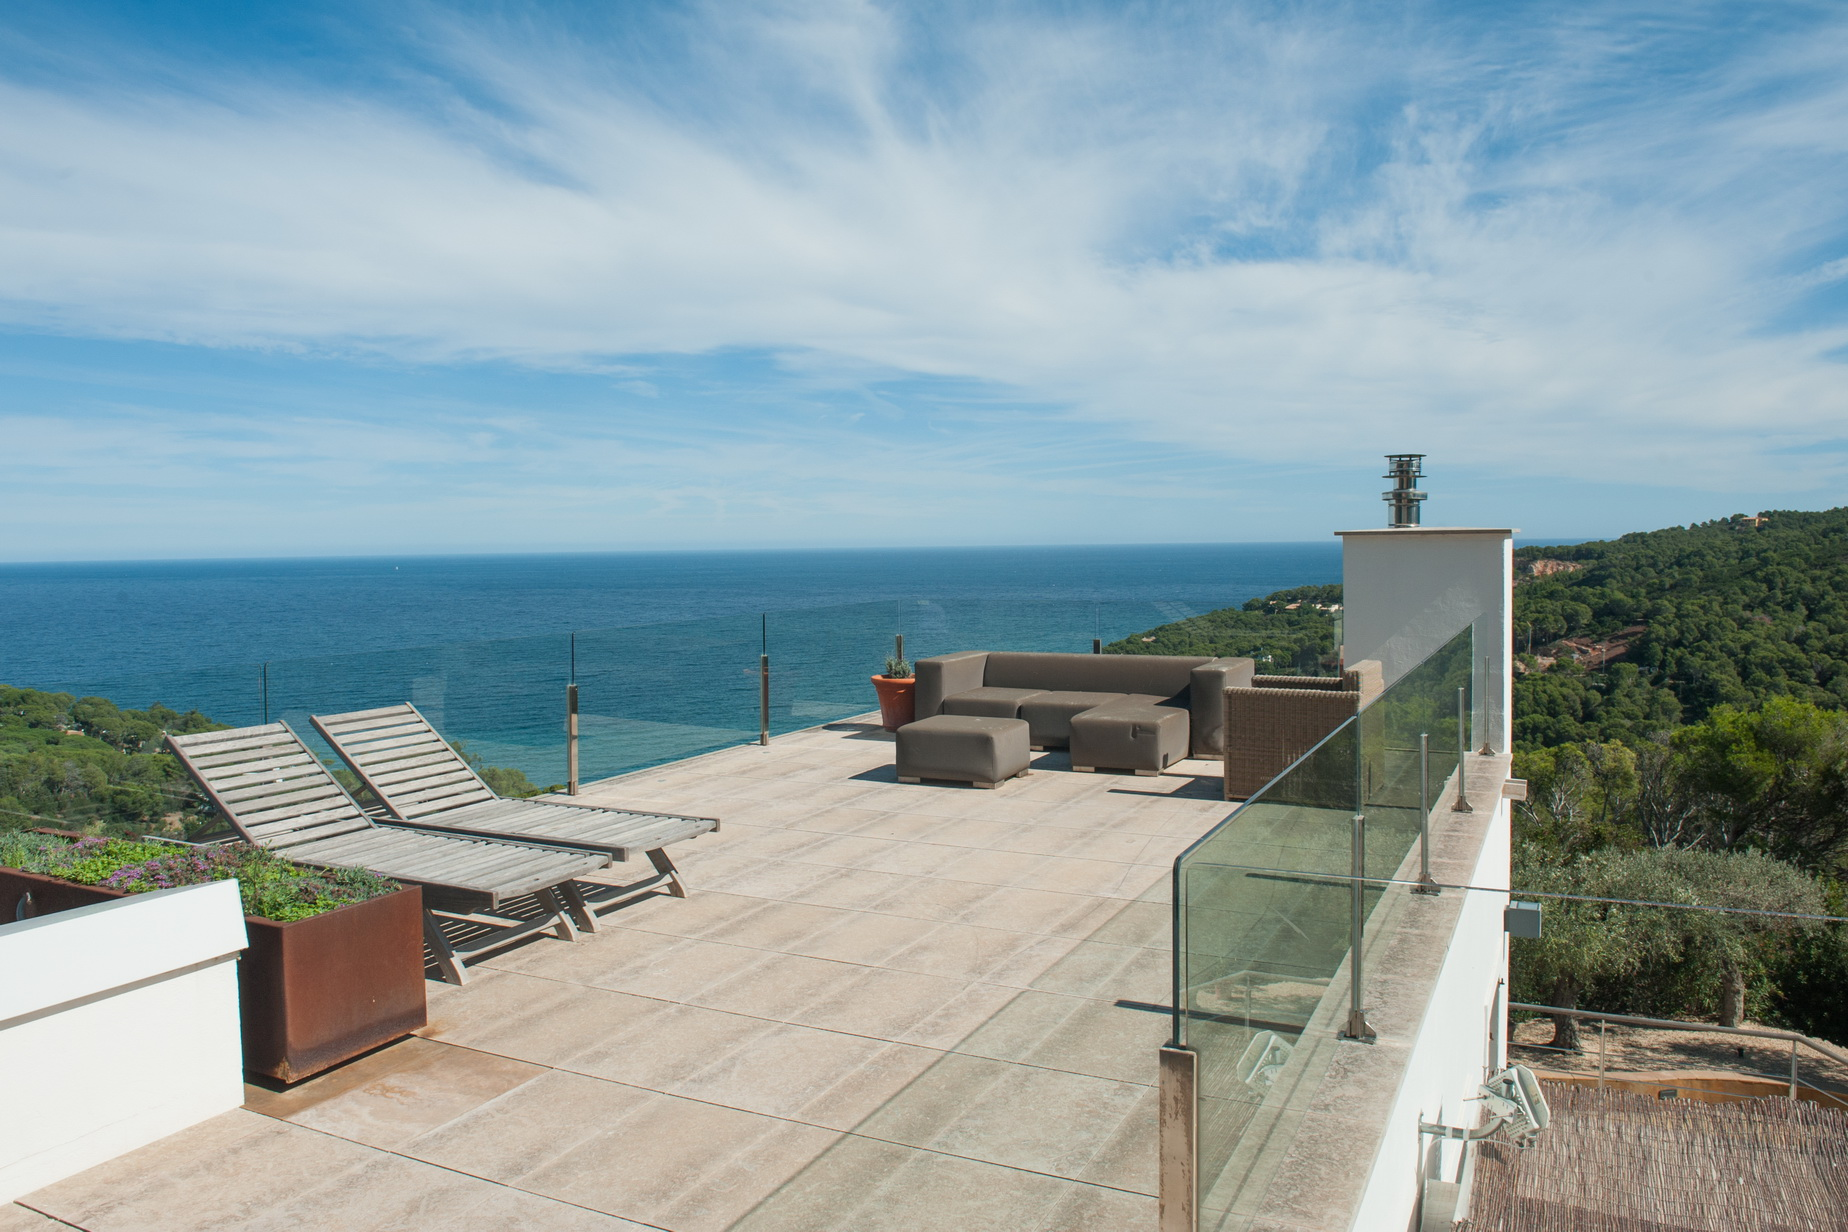 Single Family Home for Sale at Exclusive villa with stunning views in Begur Begur, Costa Brava, 17255 Spain